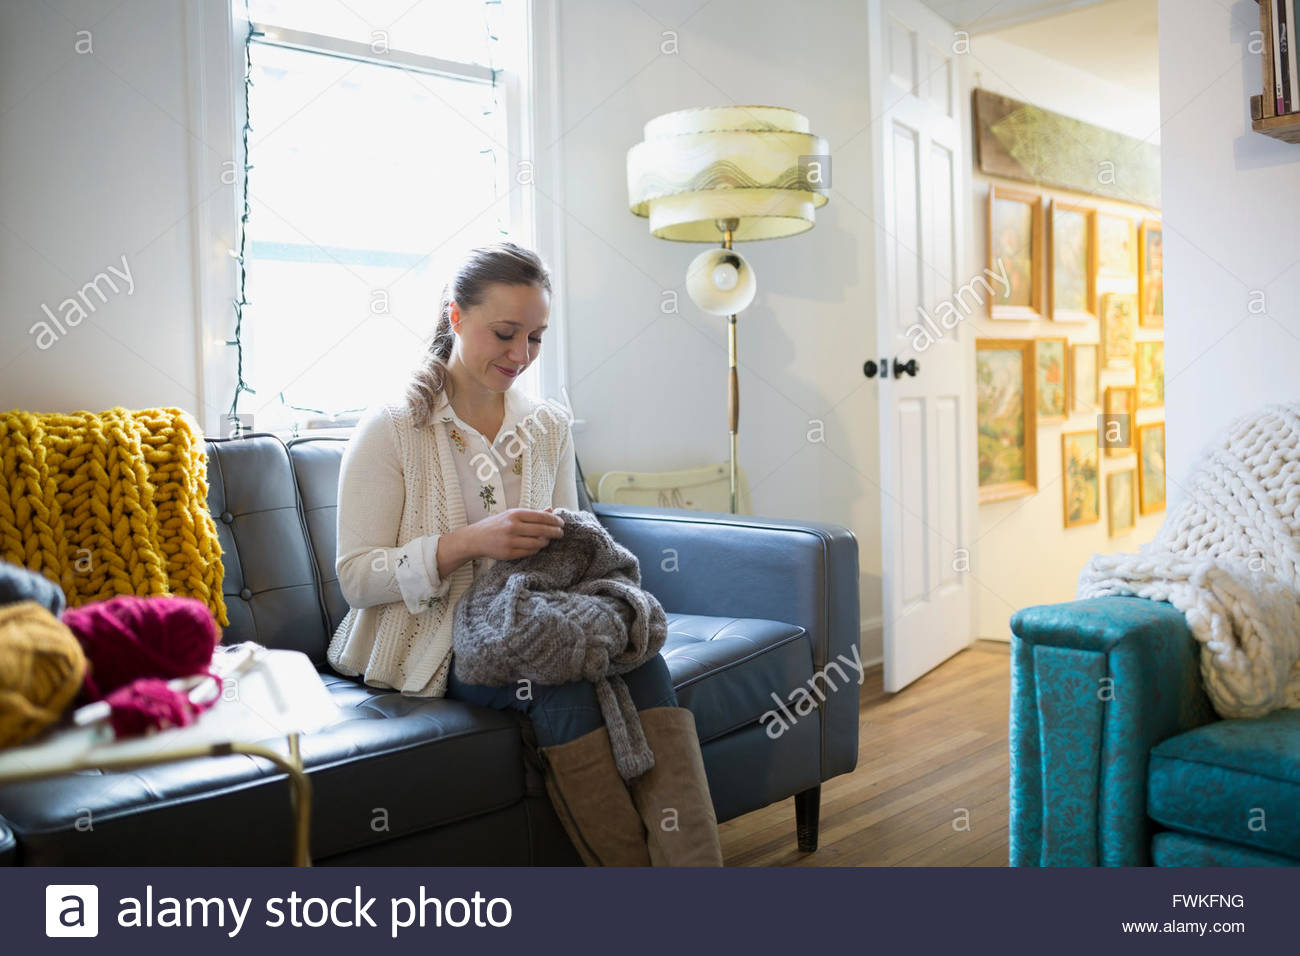 Woman knitting sweater on sofa - Stock Image